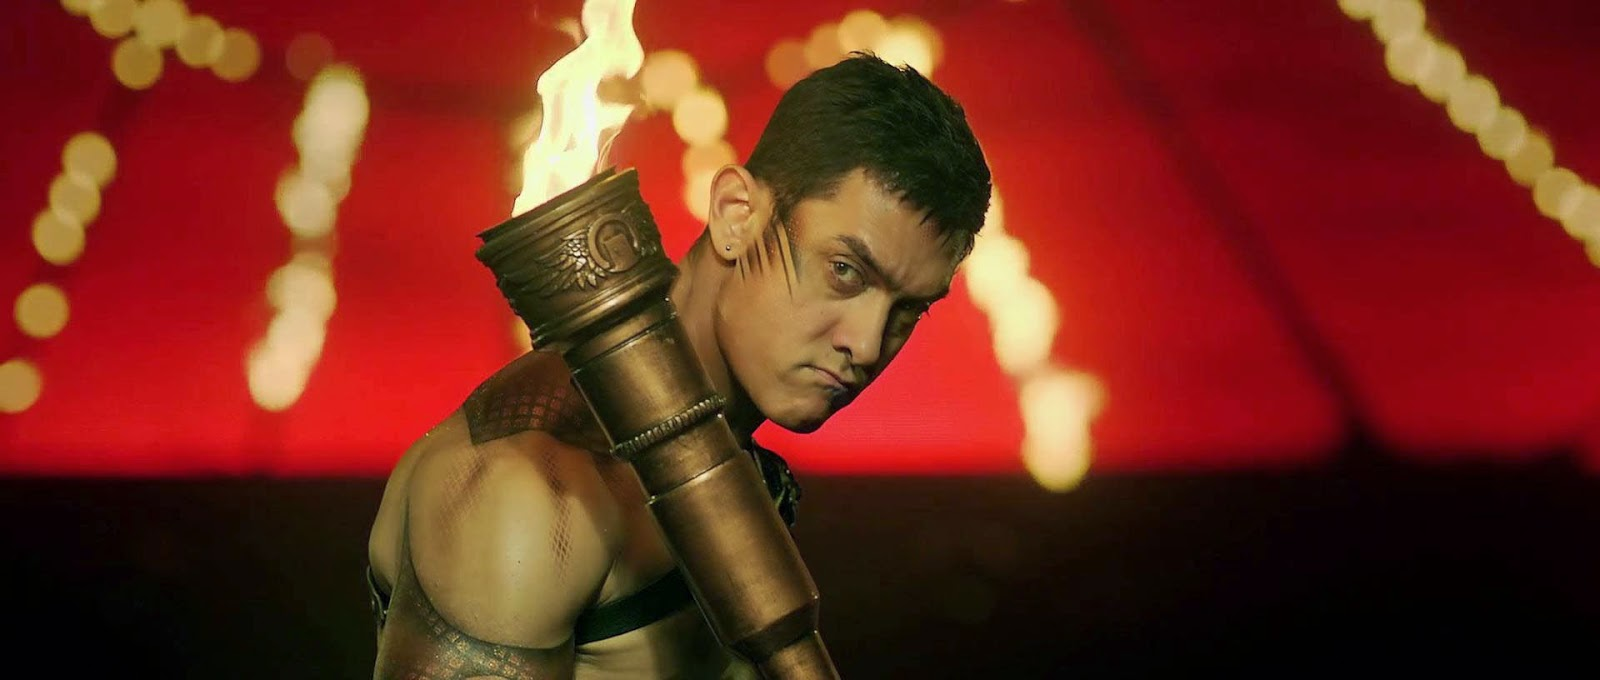 dhoom 3 movie all song download